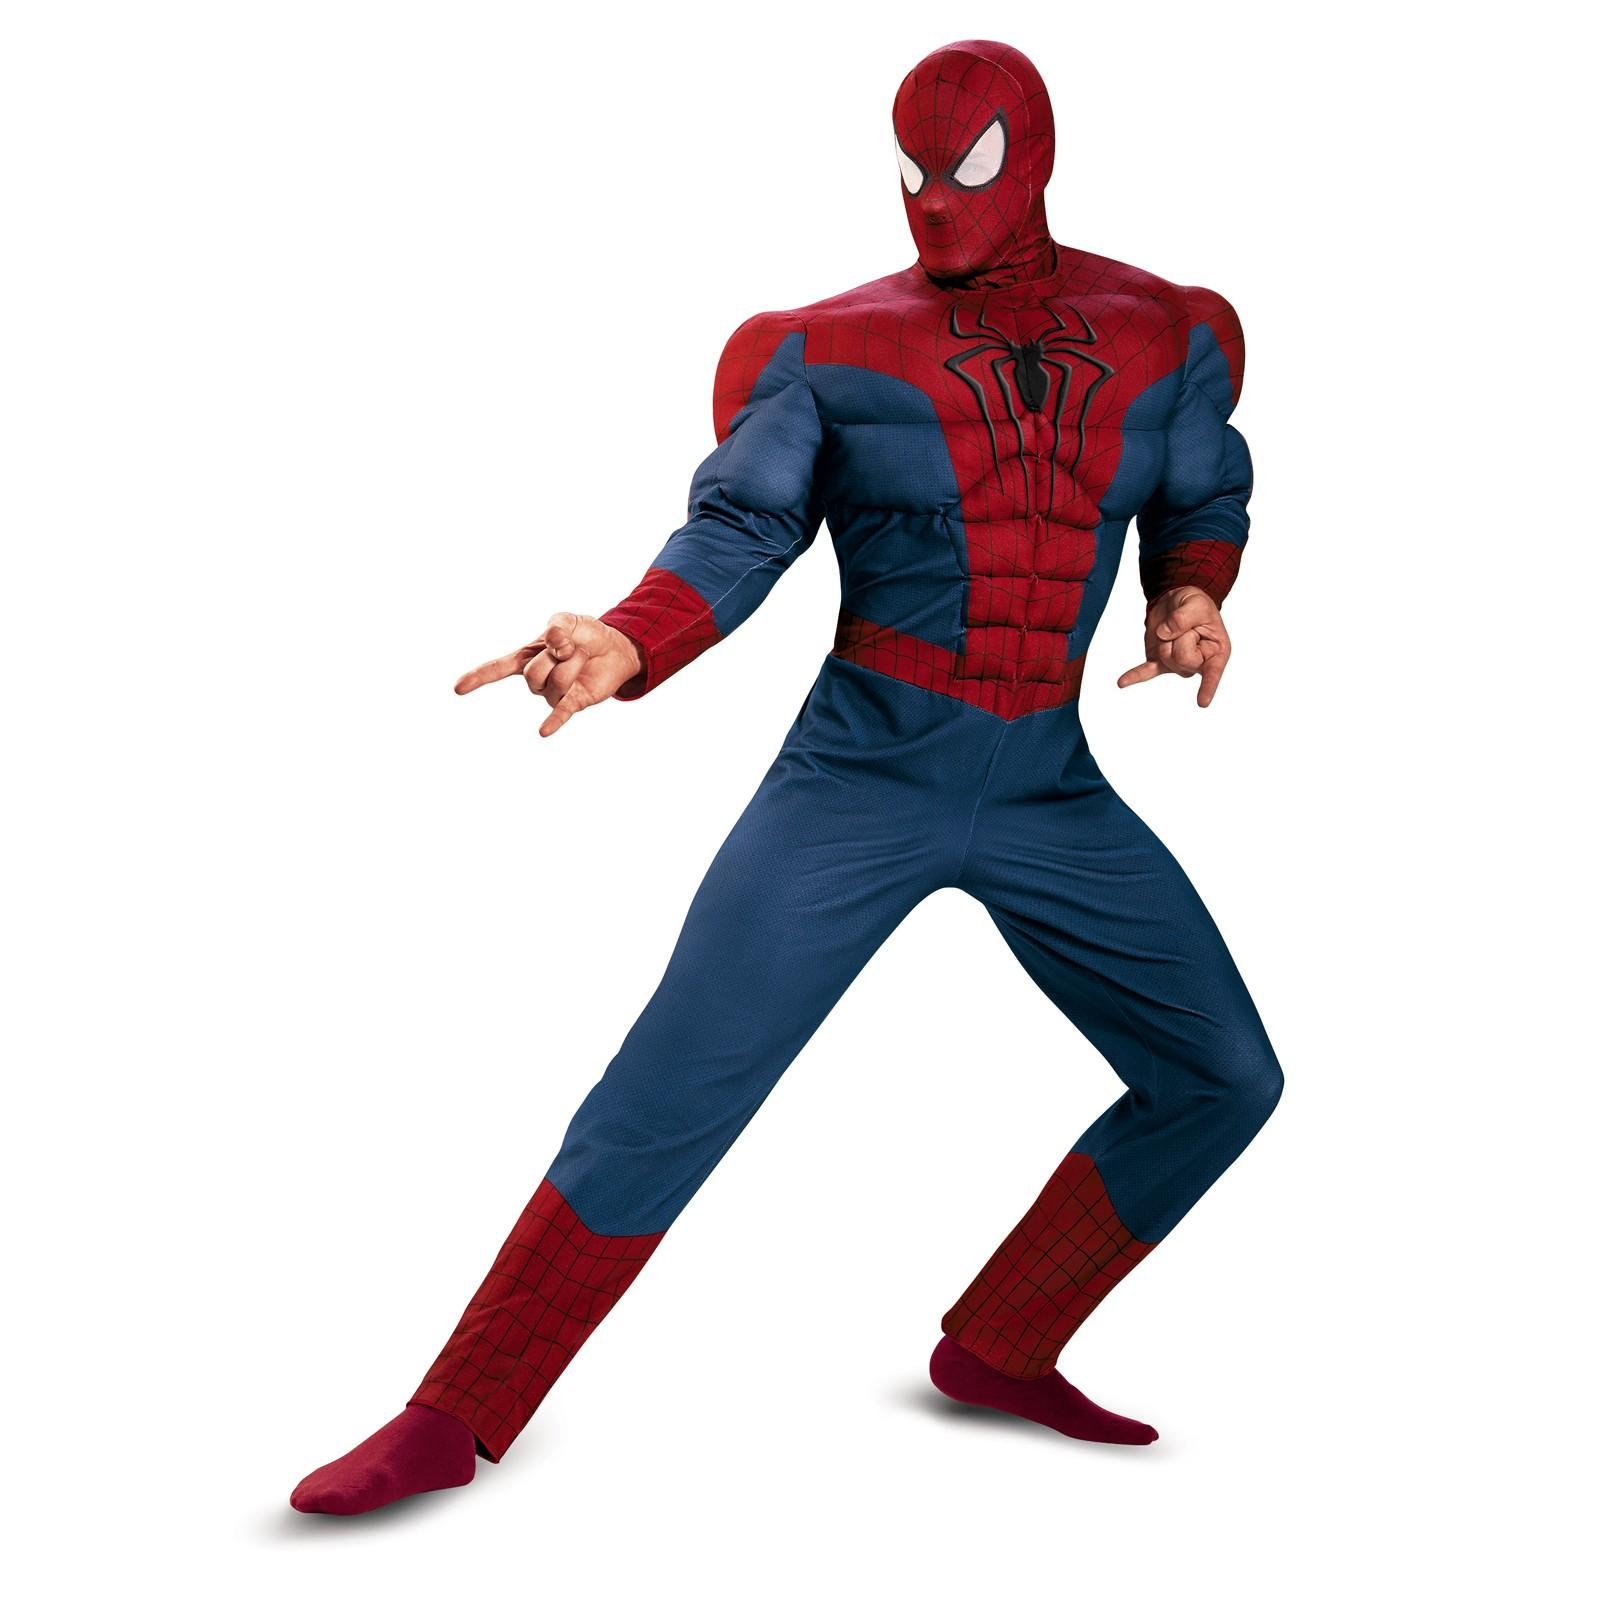 Spiderman Movie Costume